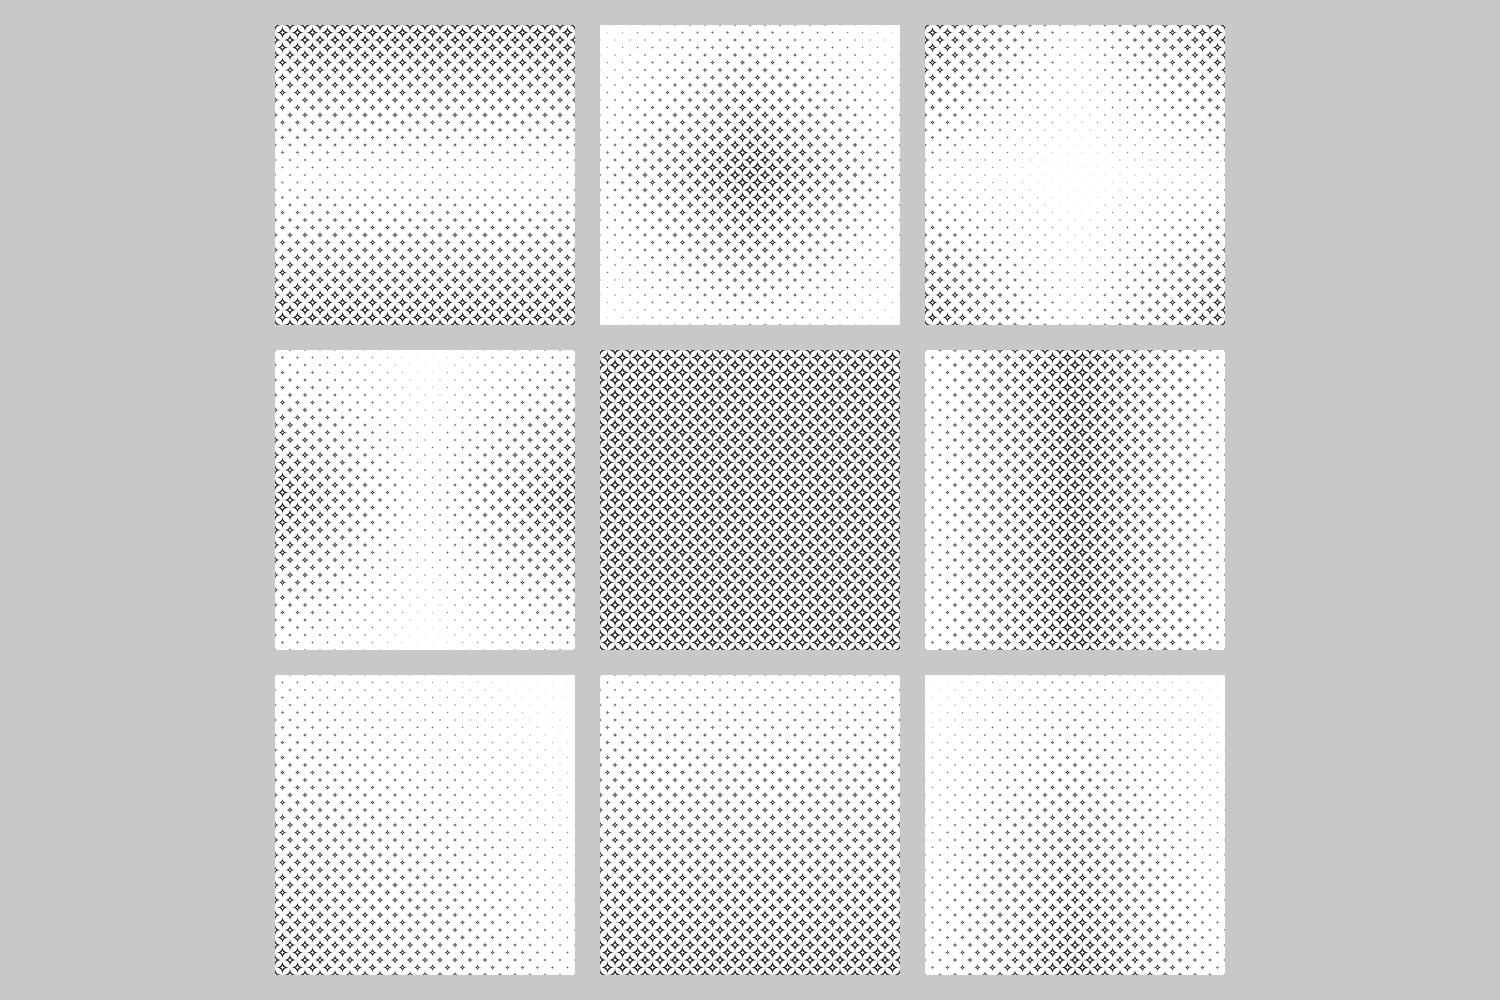 Download Free 9 Monochrome Curved Star Patterns Graphic By Davidzydd for Cricut Explore, Silhouette and other cutting machines.